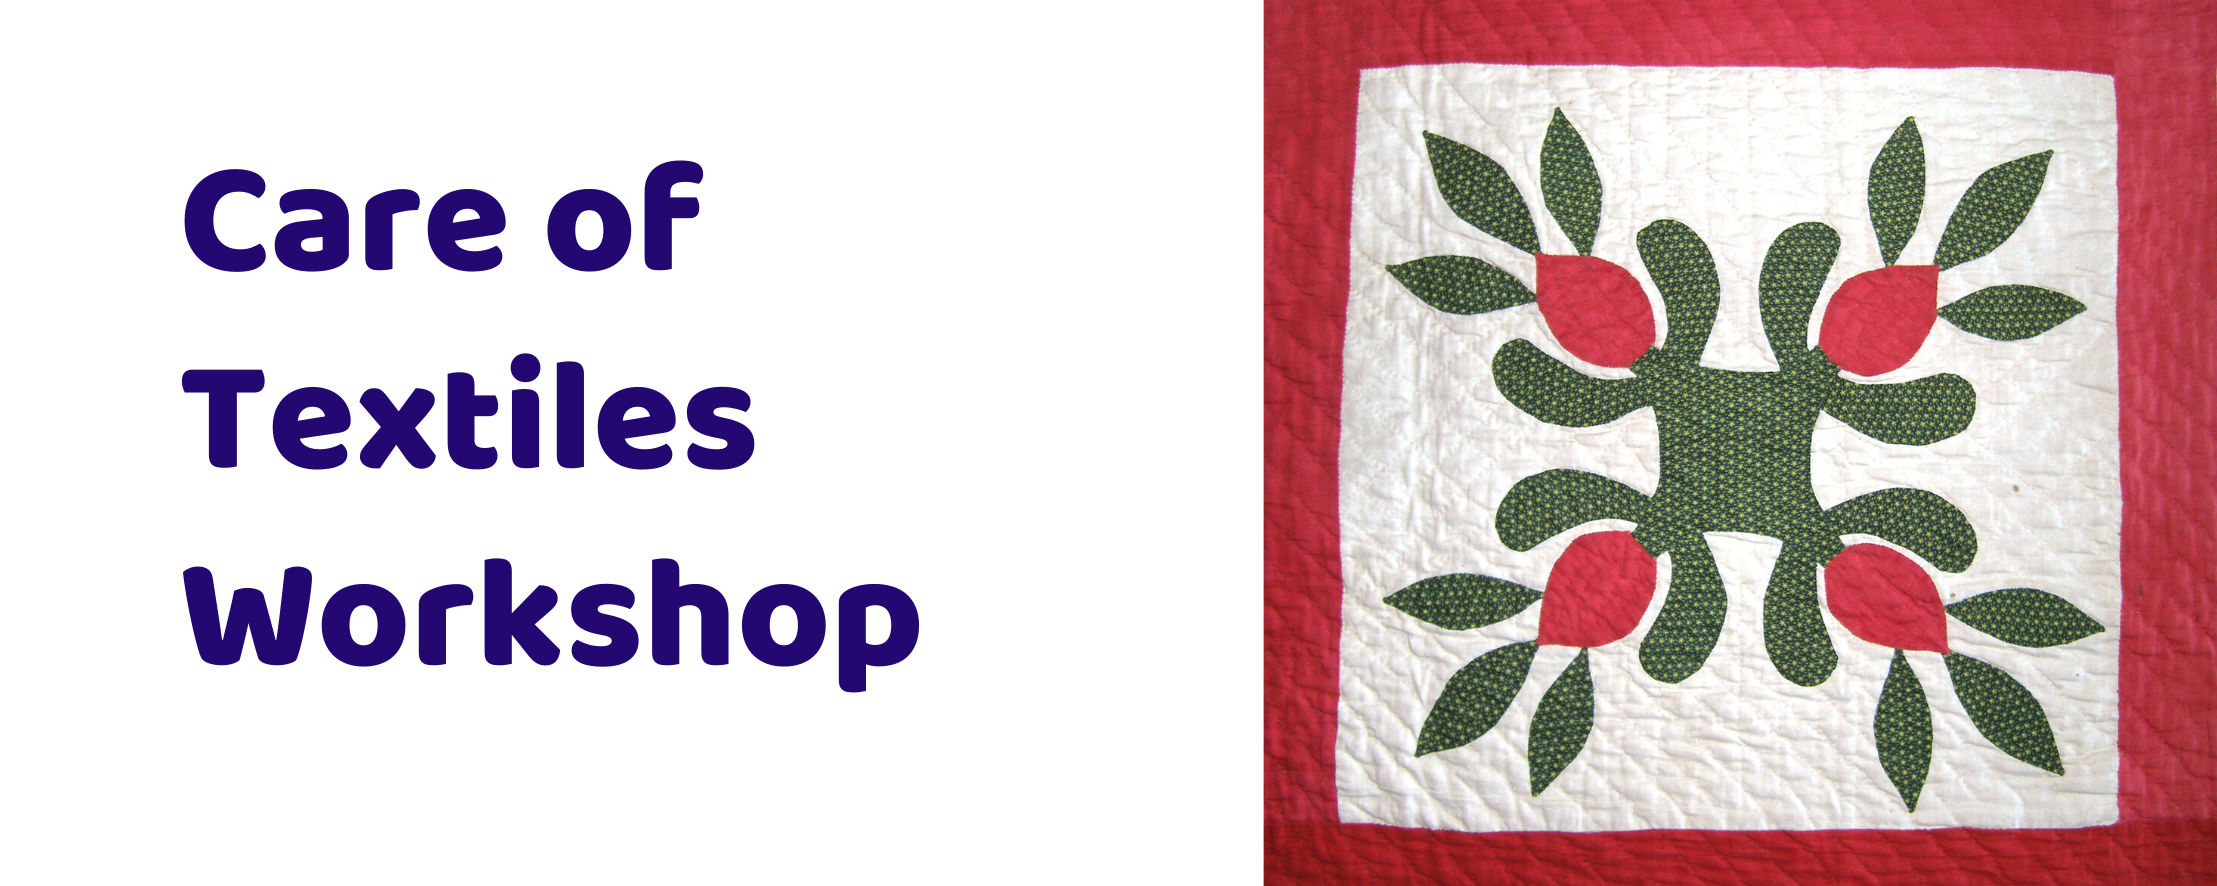 Care of Textiles Workshop